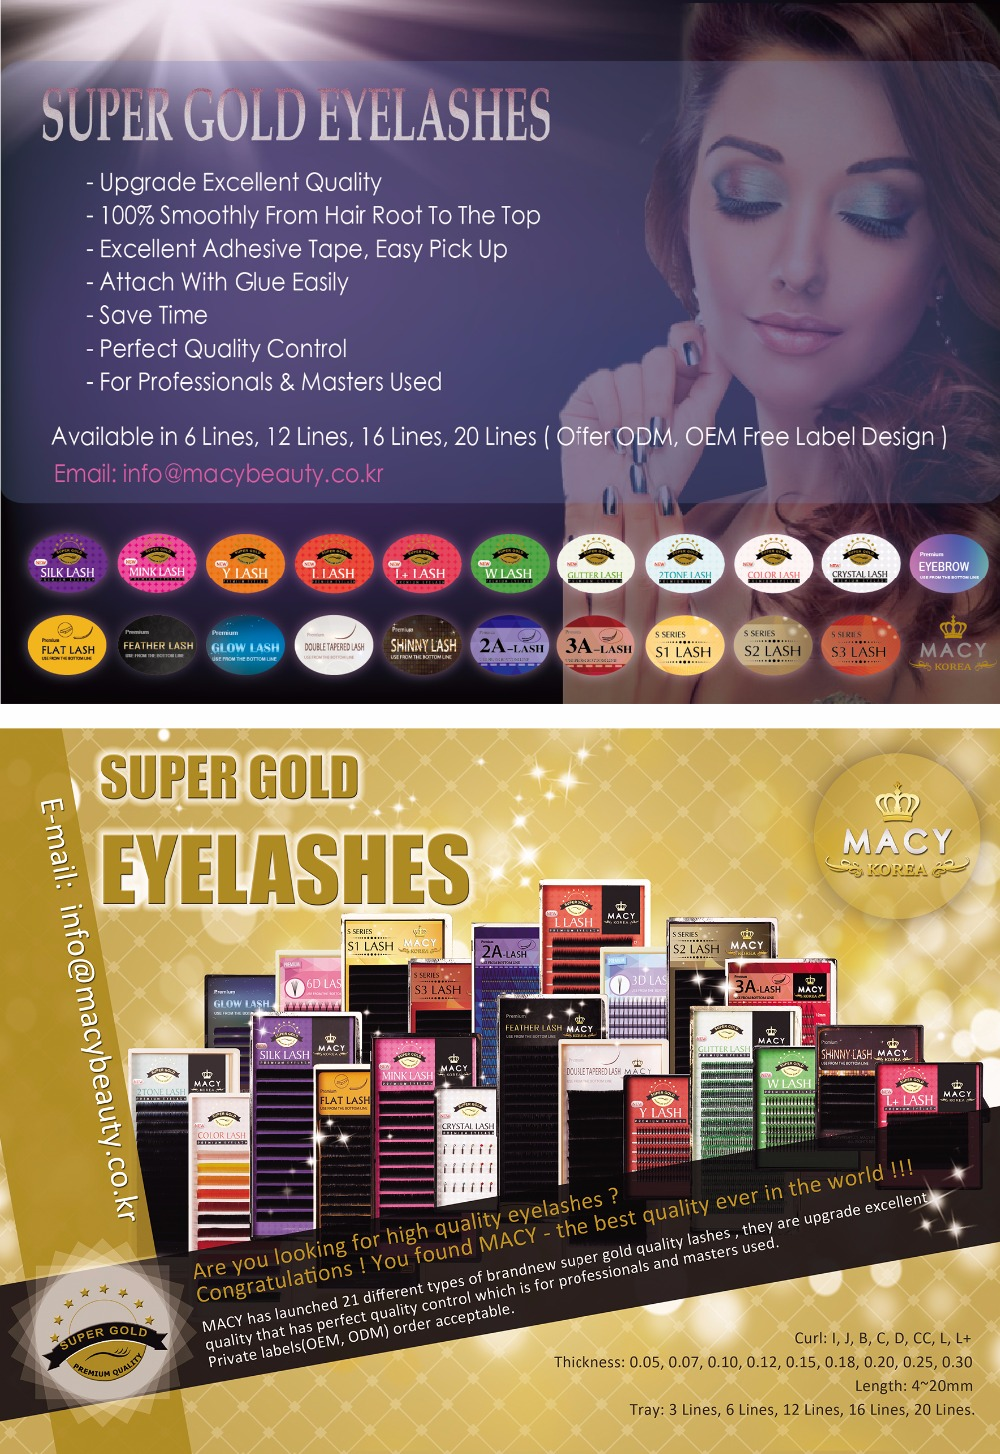 Macy Super Gold Glow Lash